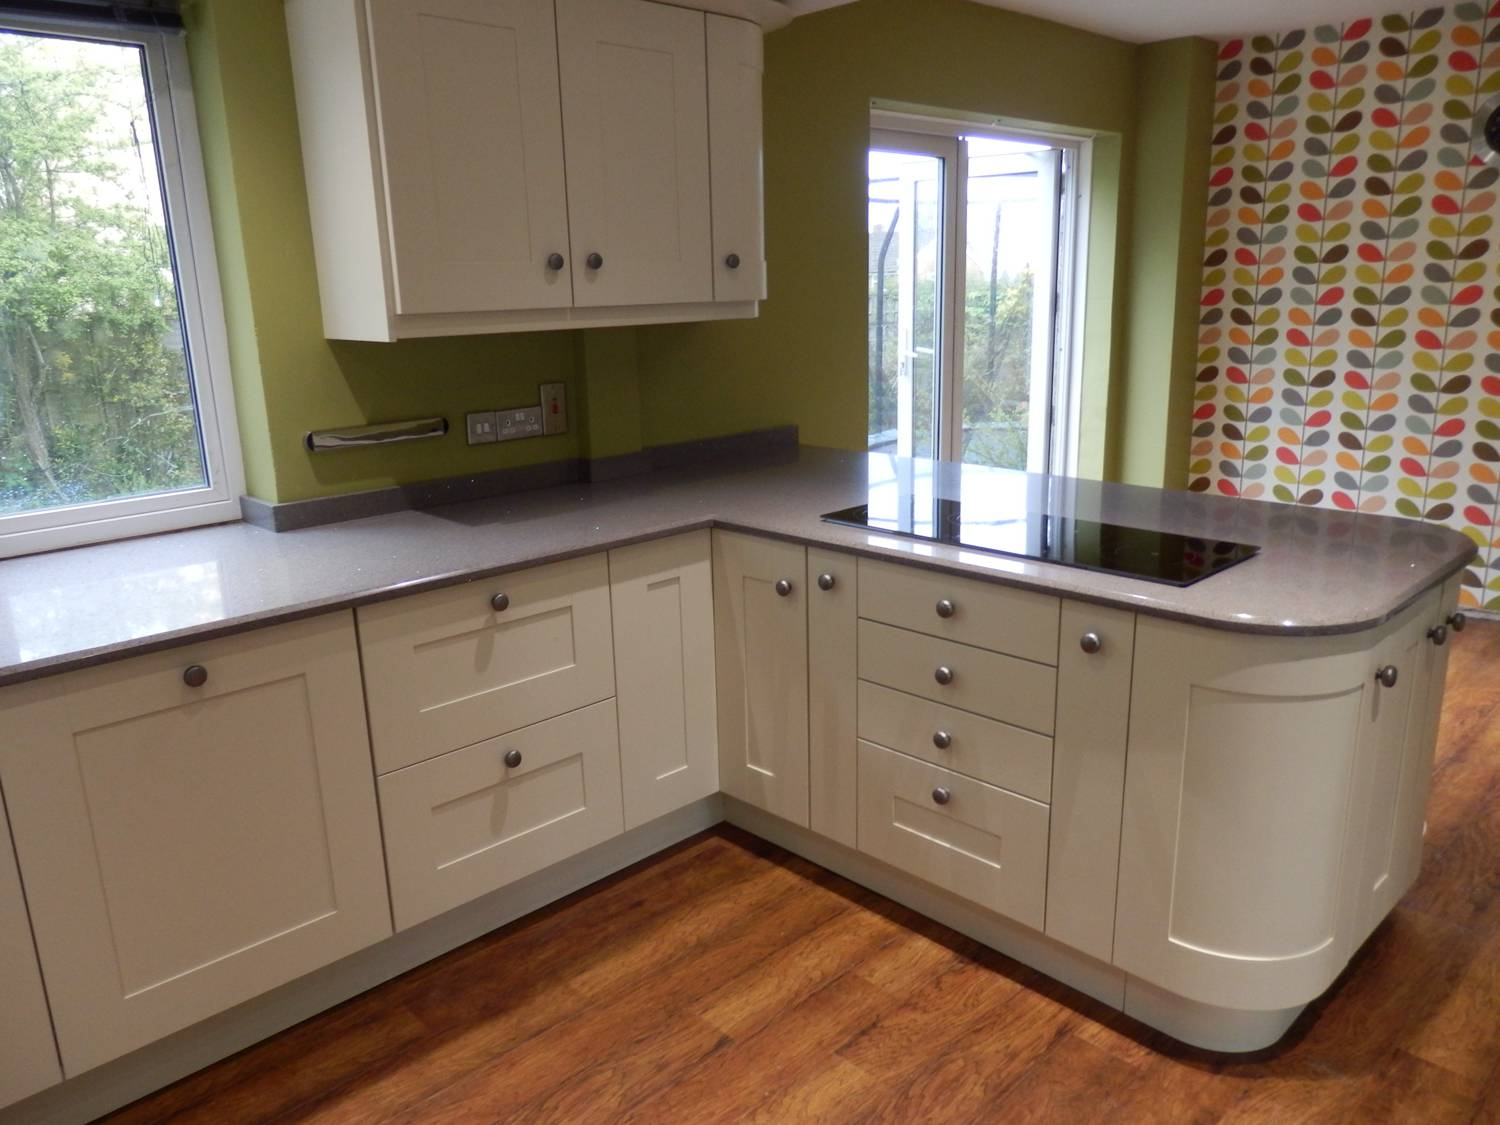 technistone starlight grey kitchen worktops ccg worktops. Black Bedroom Furniture Sets. Home Design Ideas